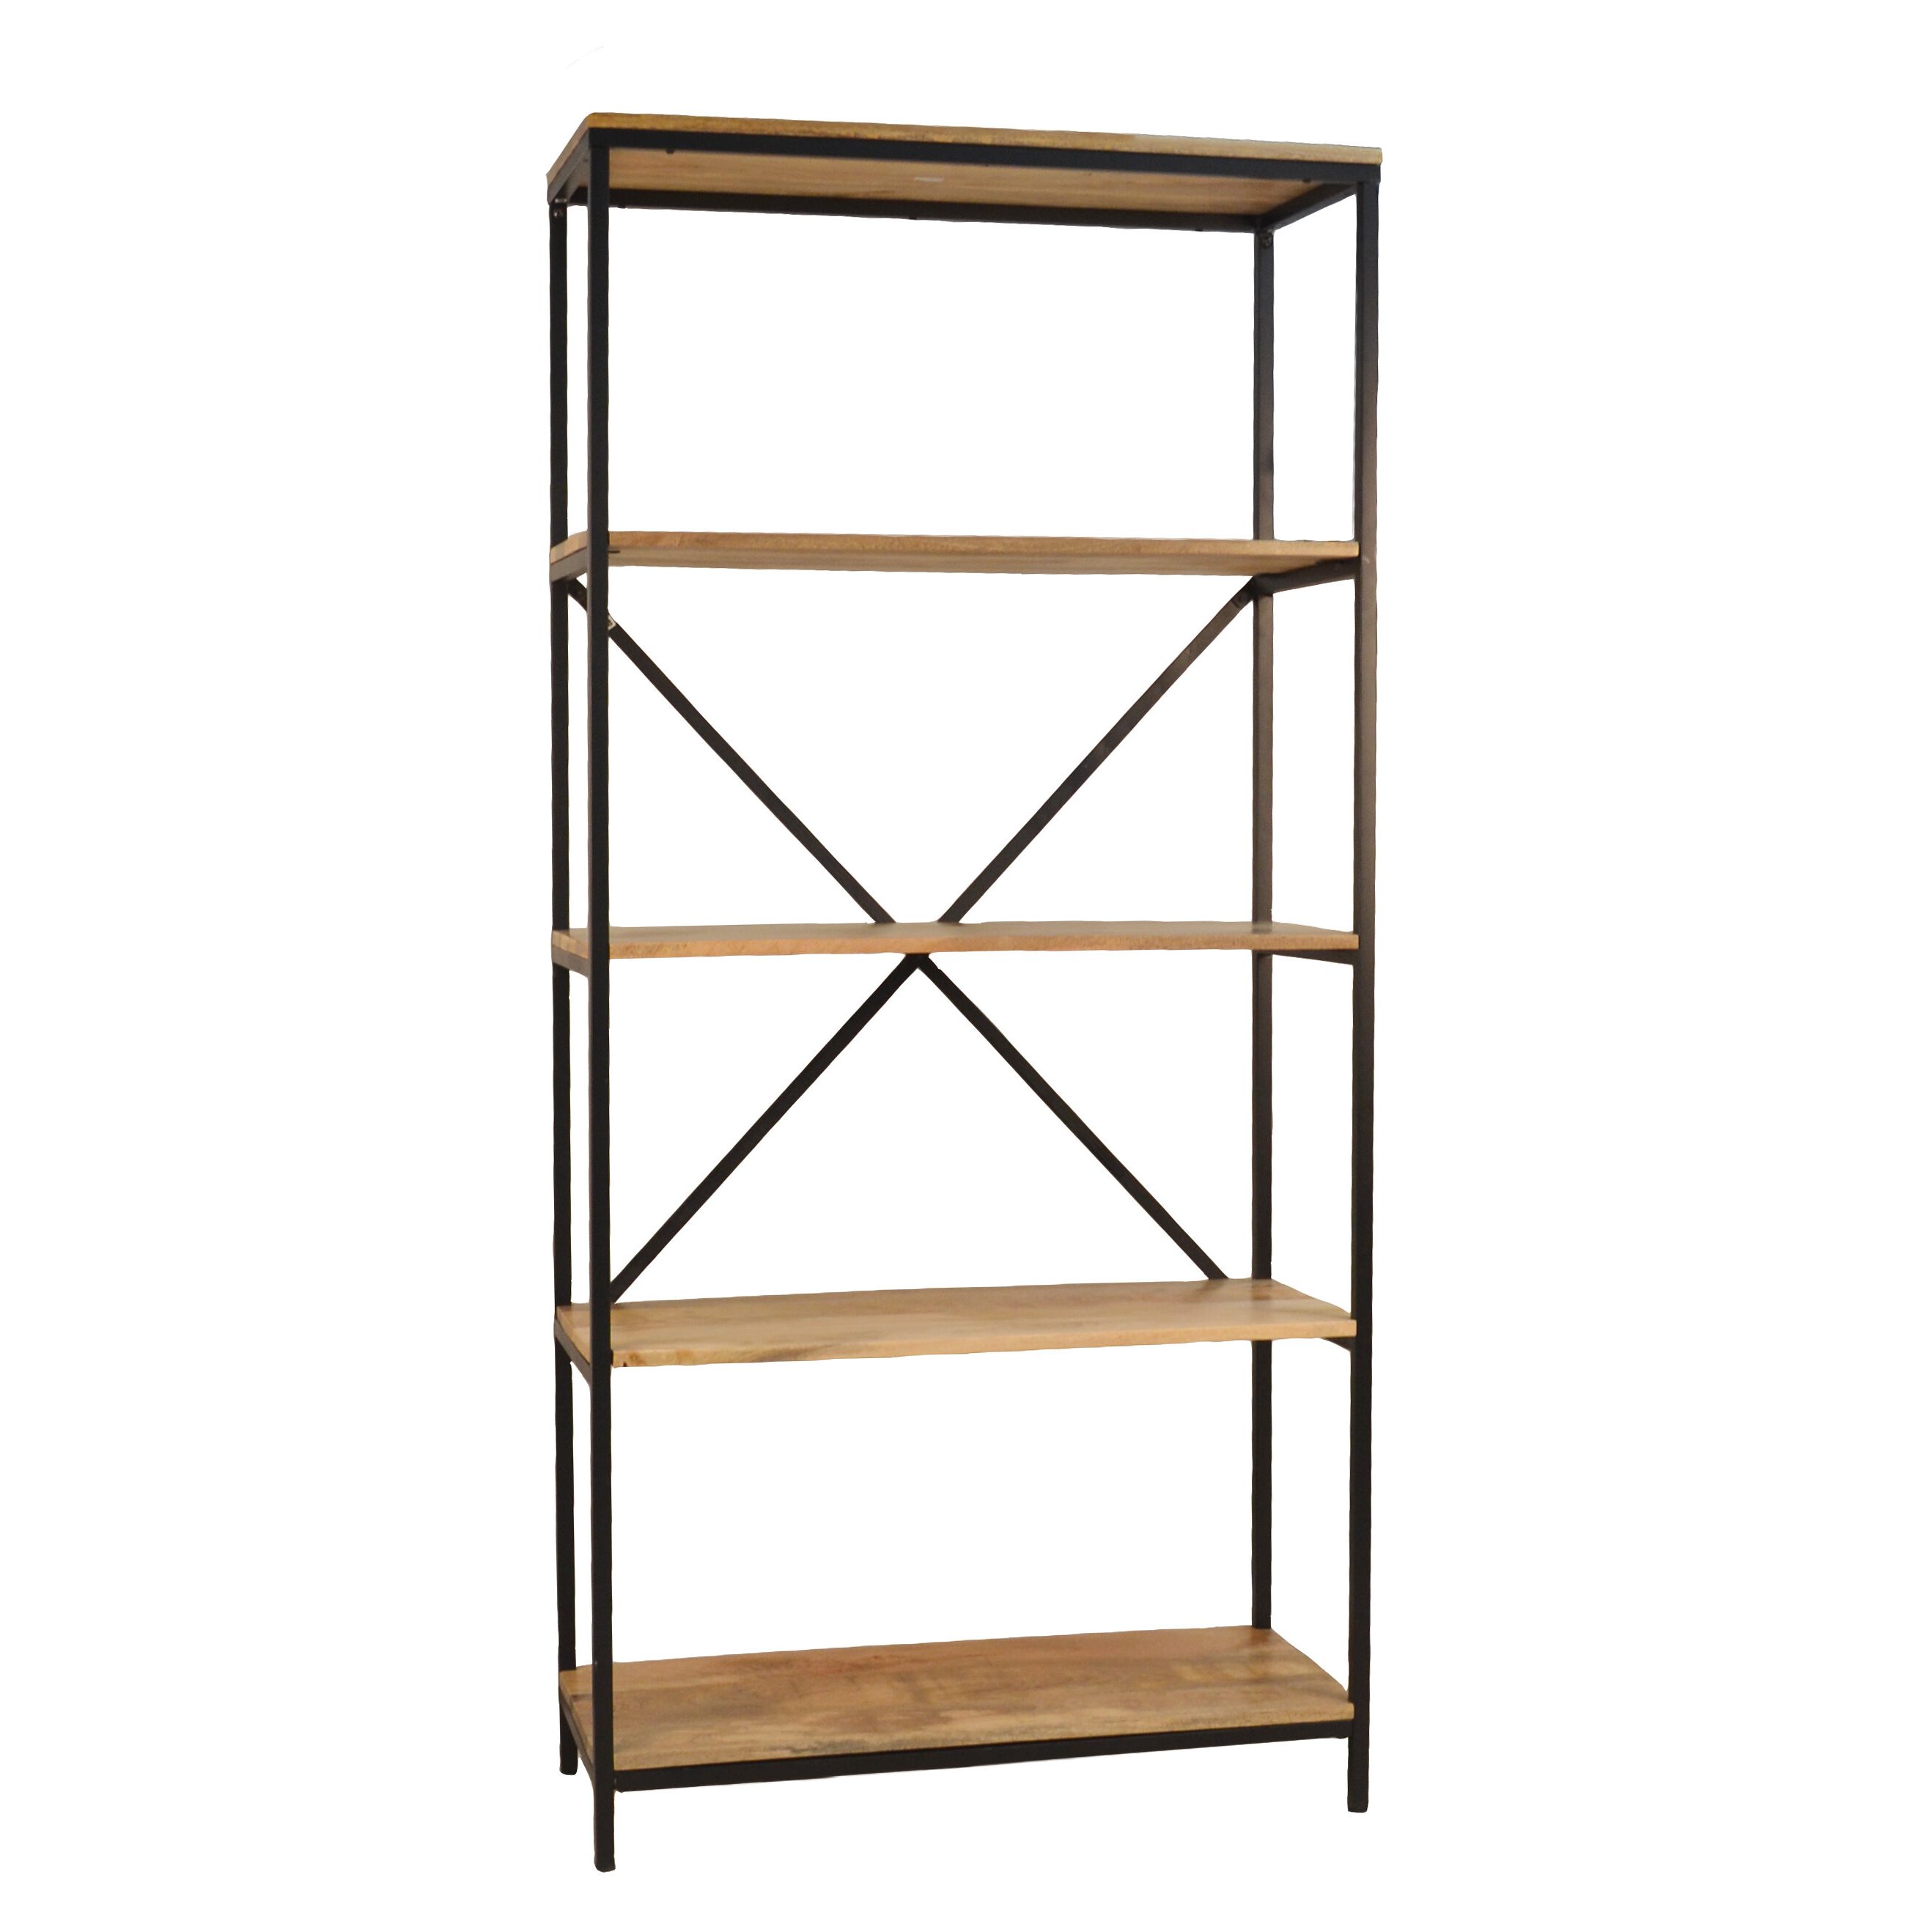 Preferred Zona Etagere Cube Bookcases With Regard To Defranco Etagere Bookcase (View 6 of 20)